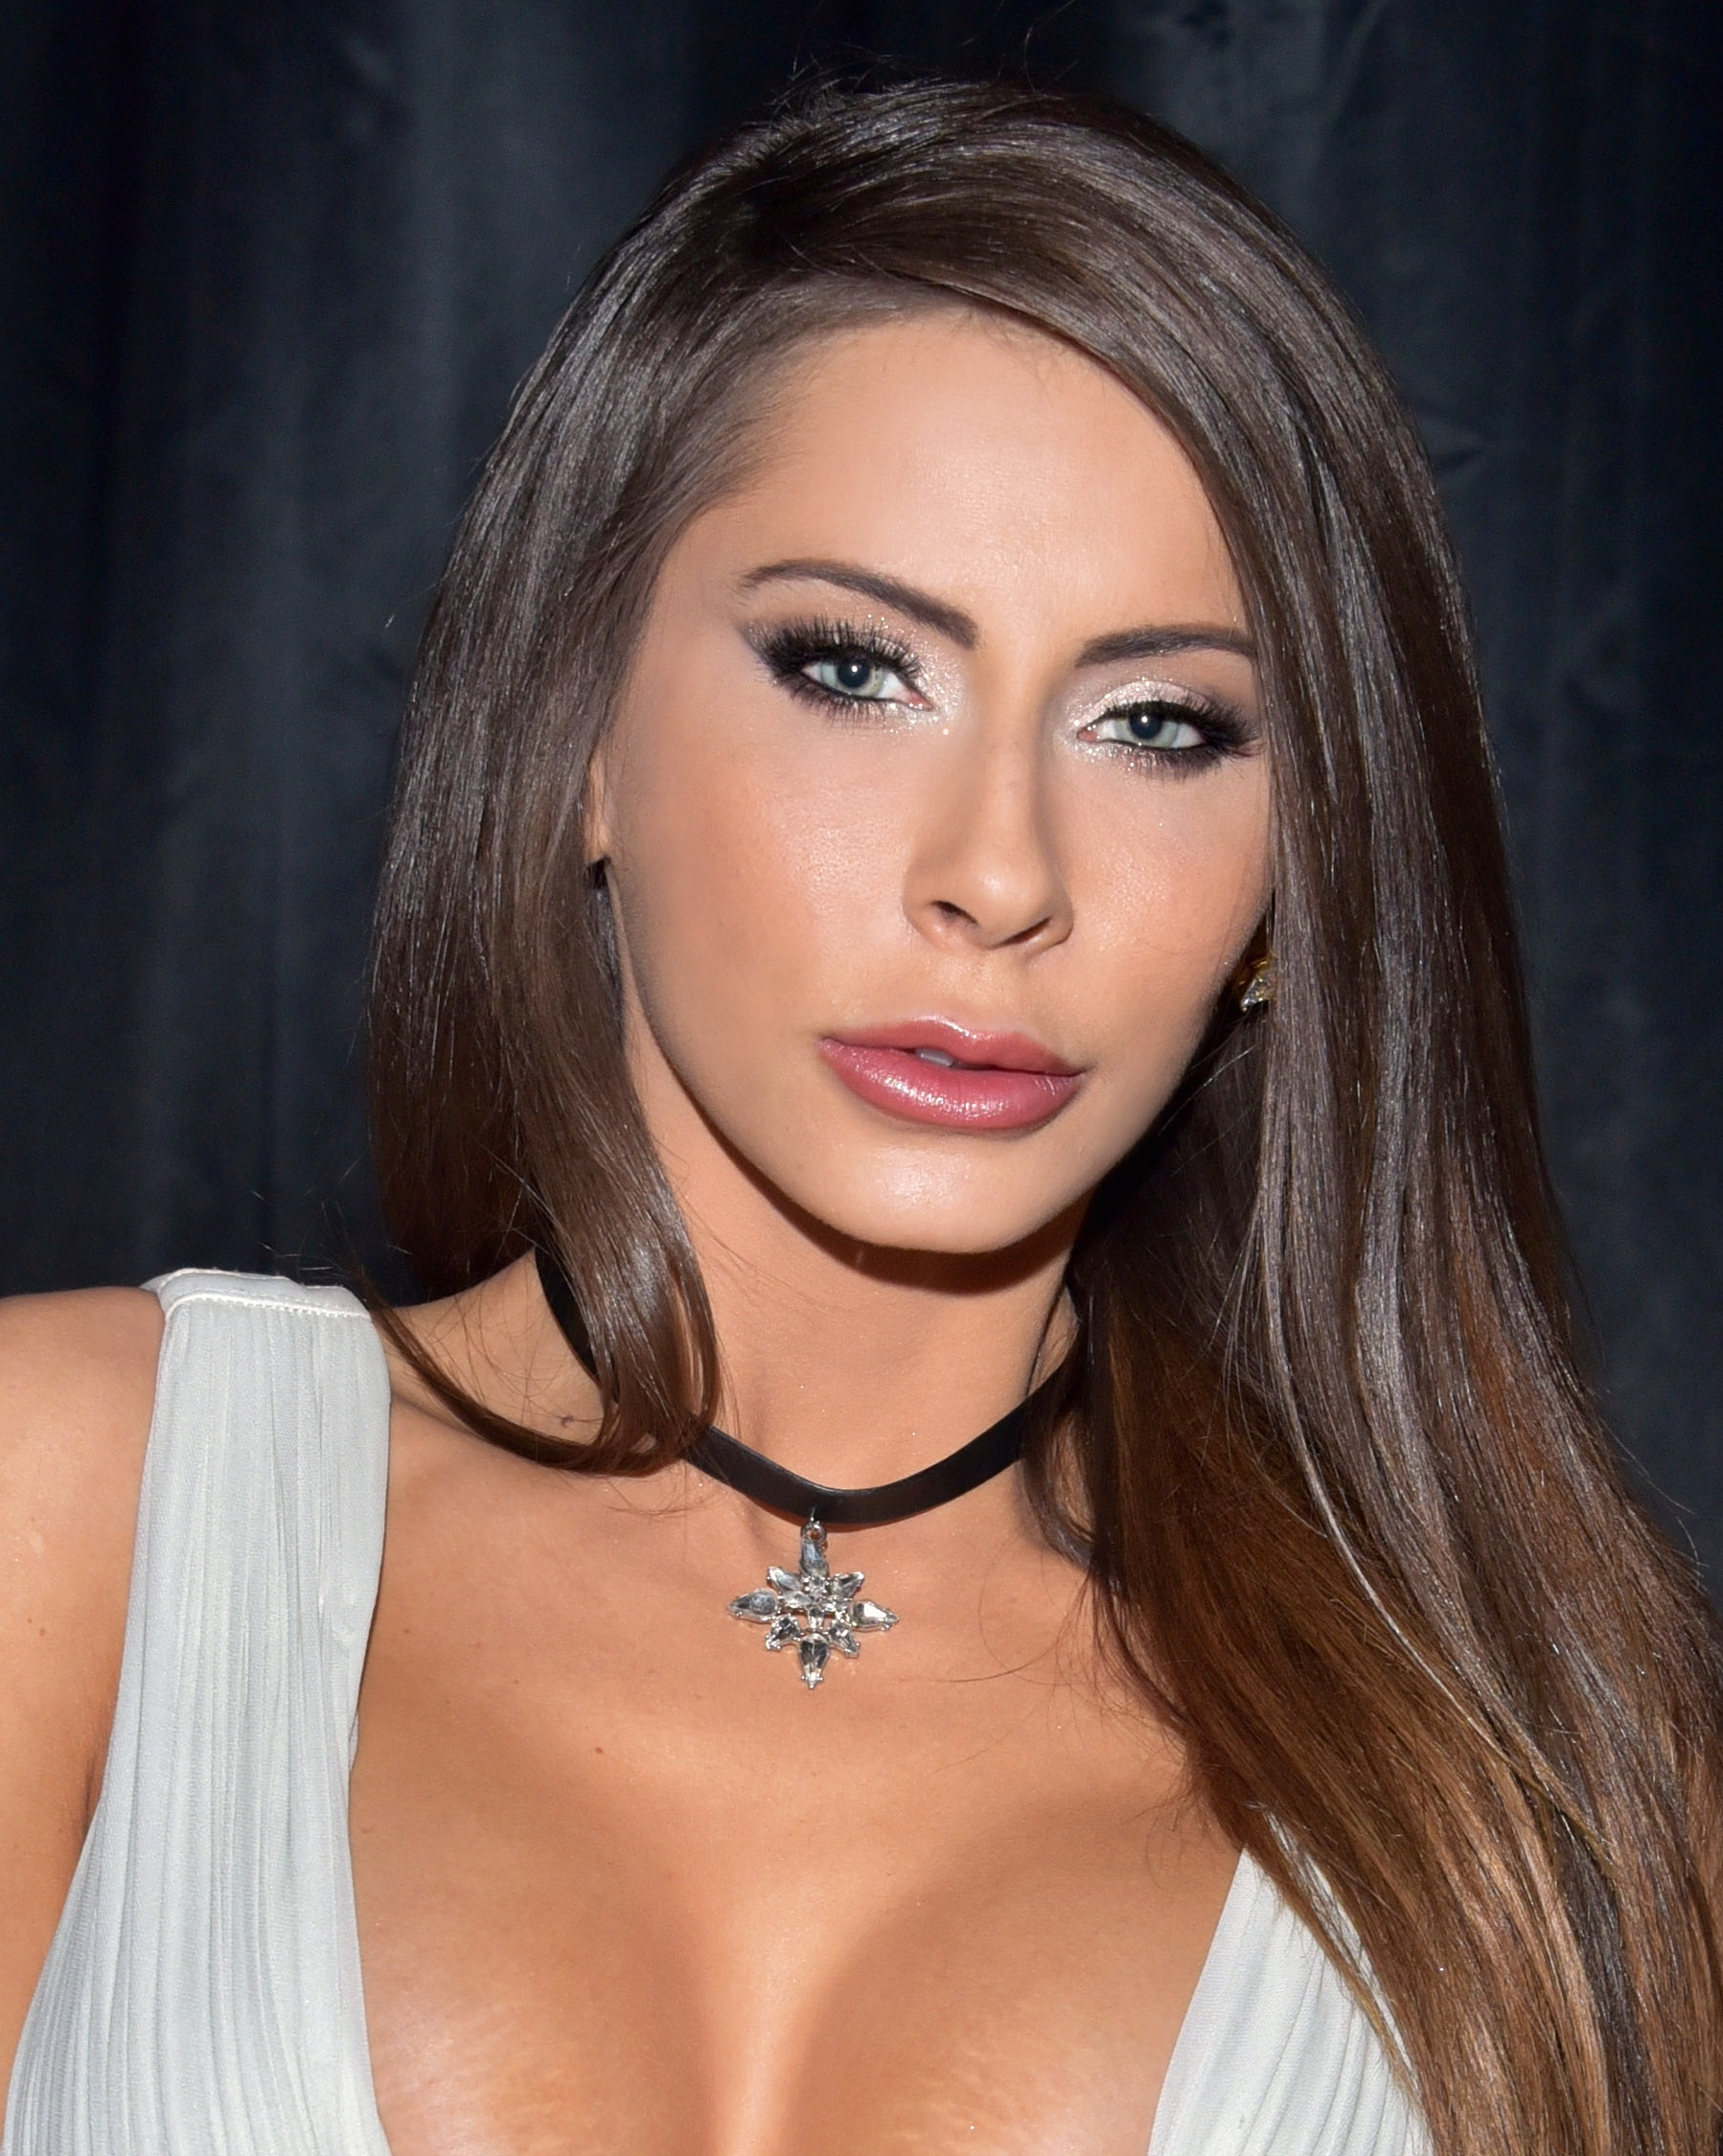 madison ivy wikipedia